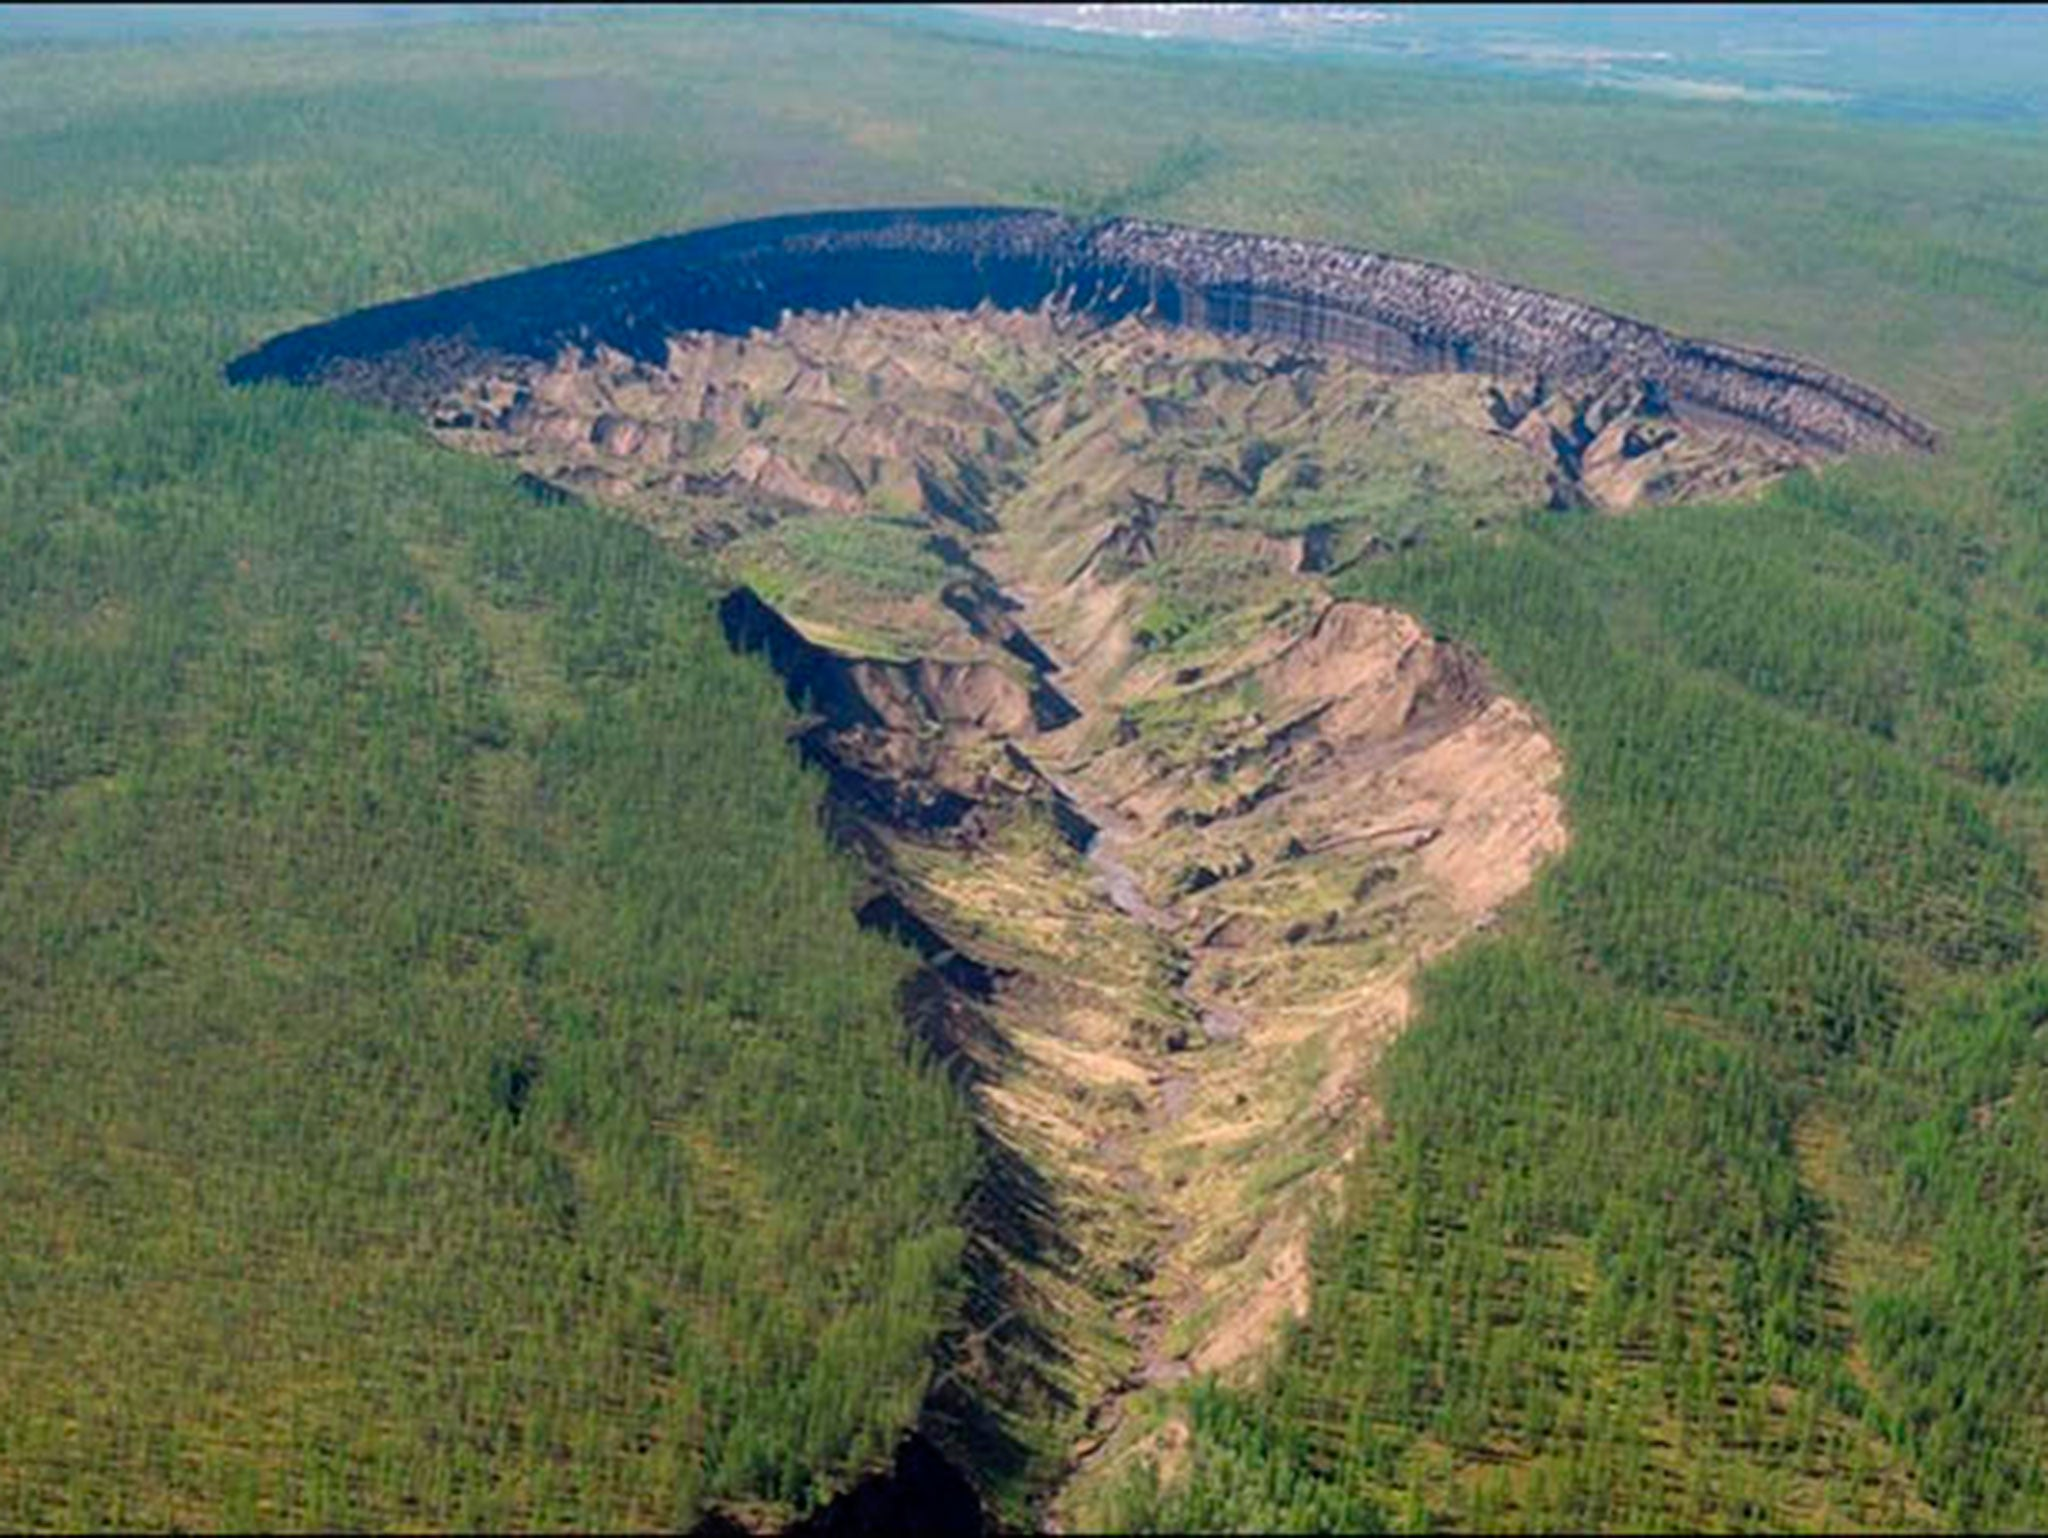 Appearance of crater dubbed 'the Gateway to the Underworld' in Siberia is a warning to our warming planet